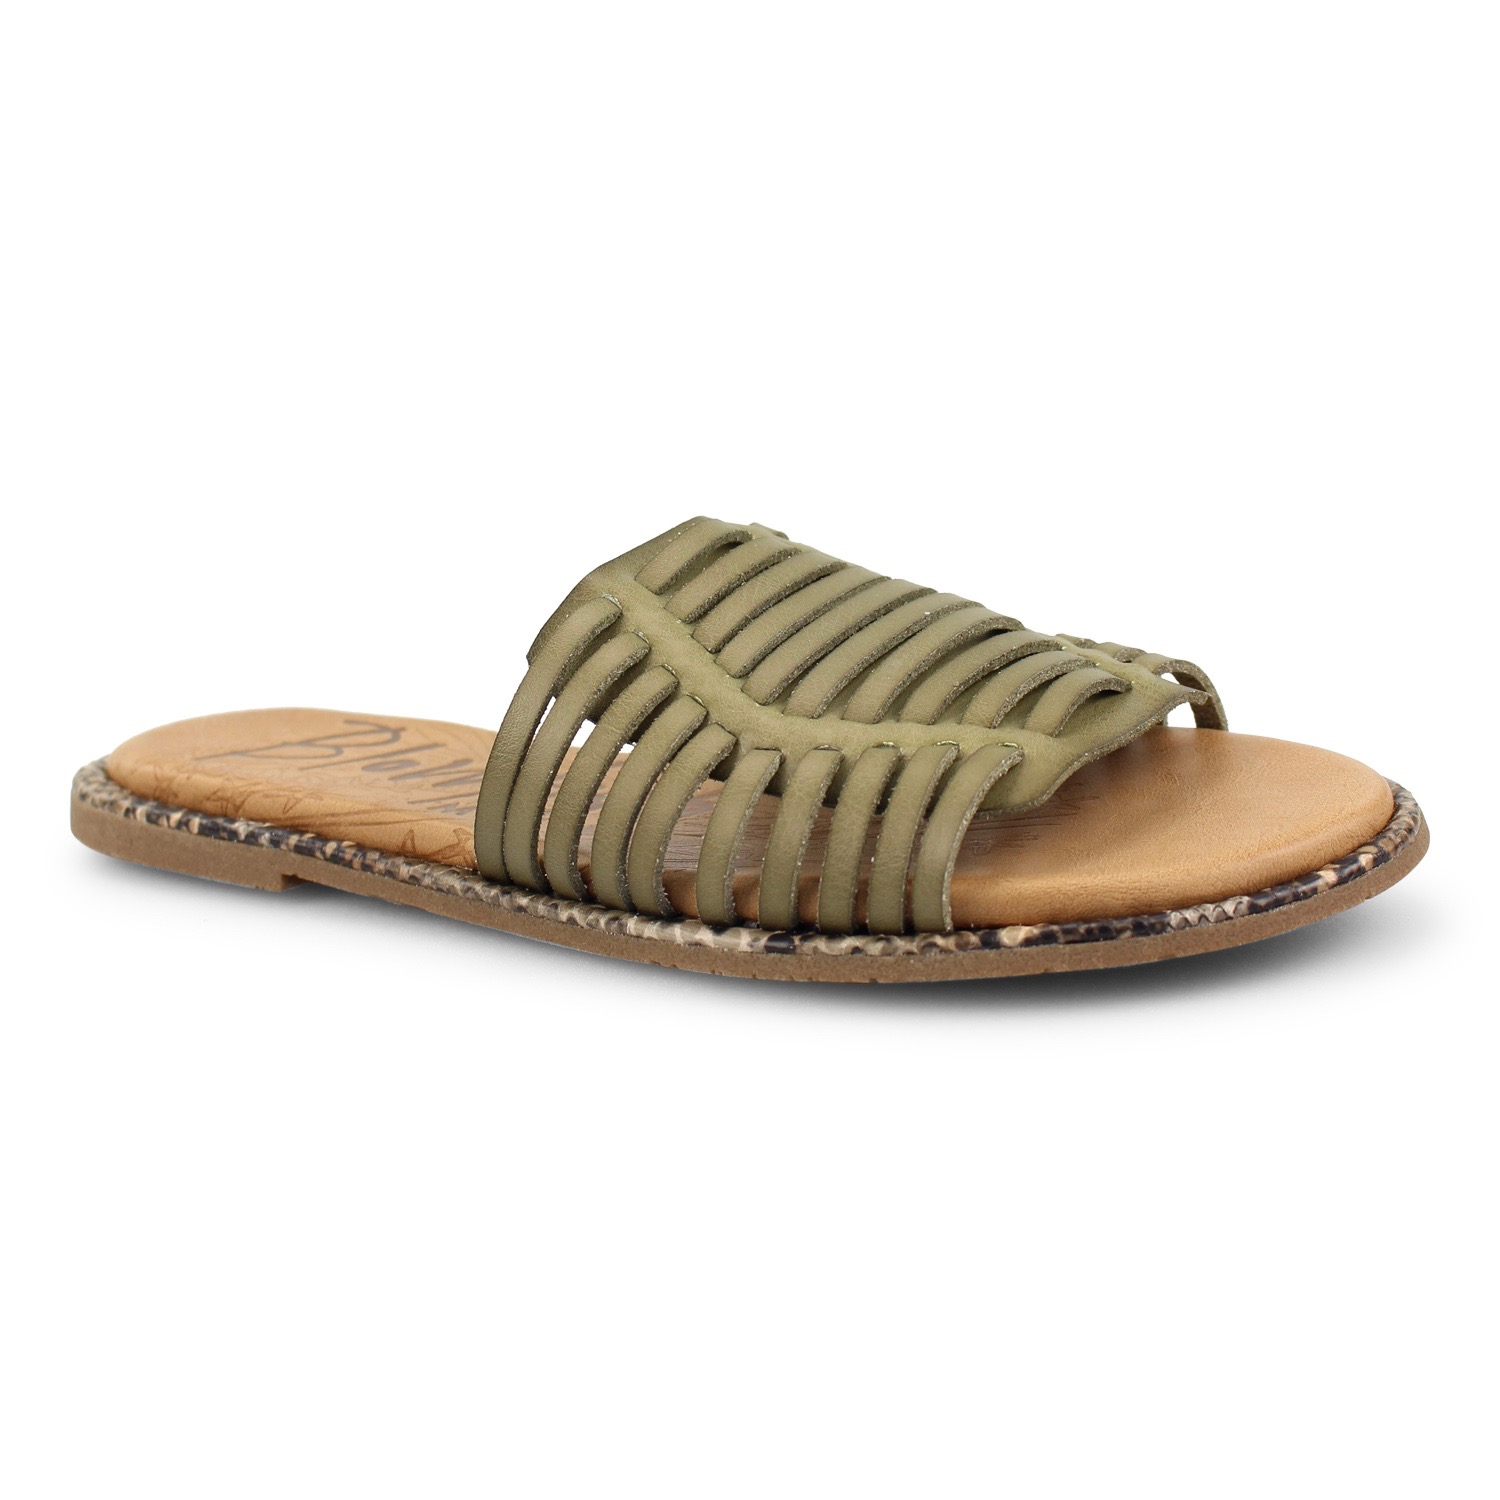 blowfish sandal